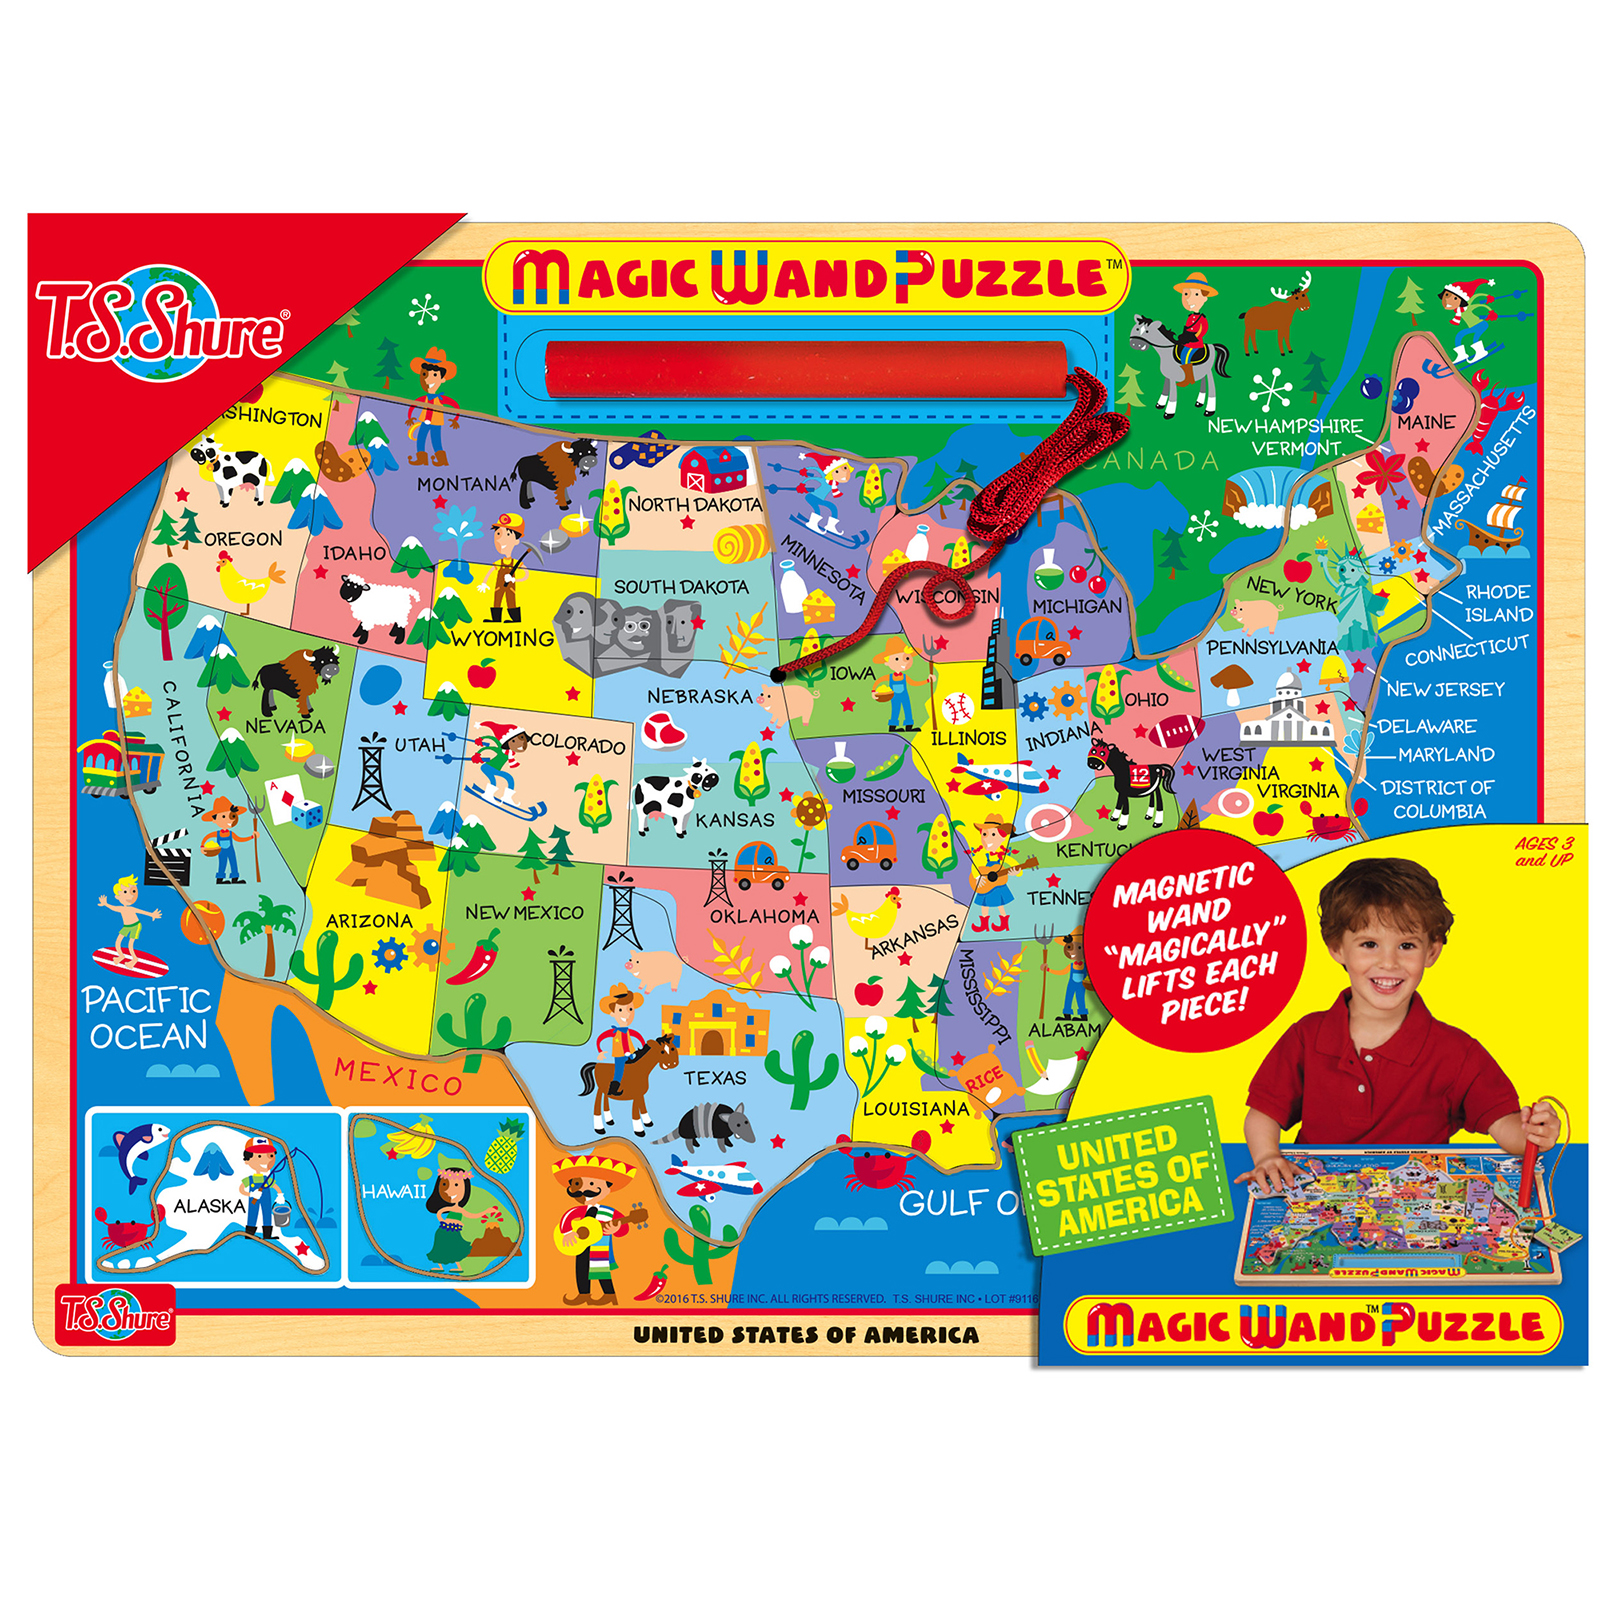 TS Shure Map of the USA Wooden Magnetic Magic Wand Puzzle PartNumber: 05233206000P KsnValue: 05233206000 MfgPartNumber: 195755